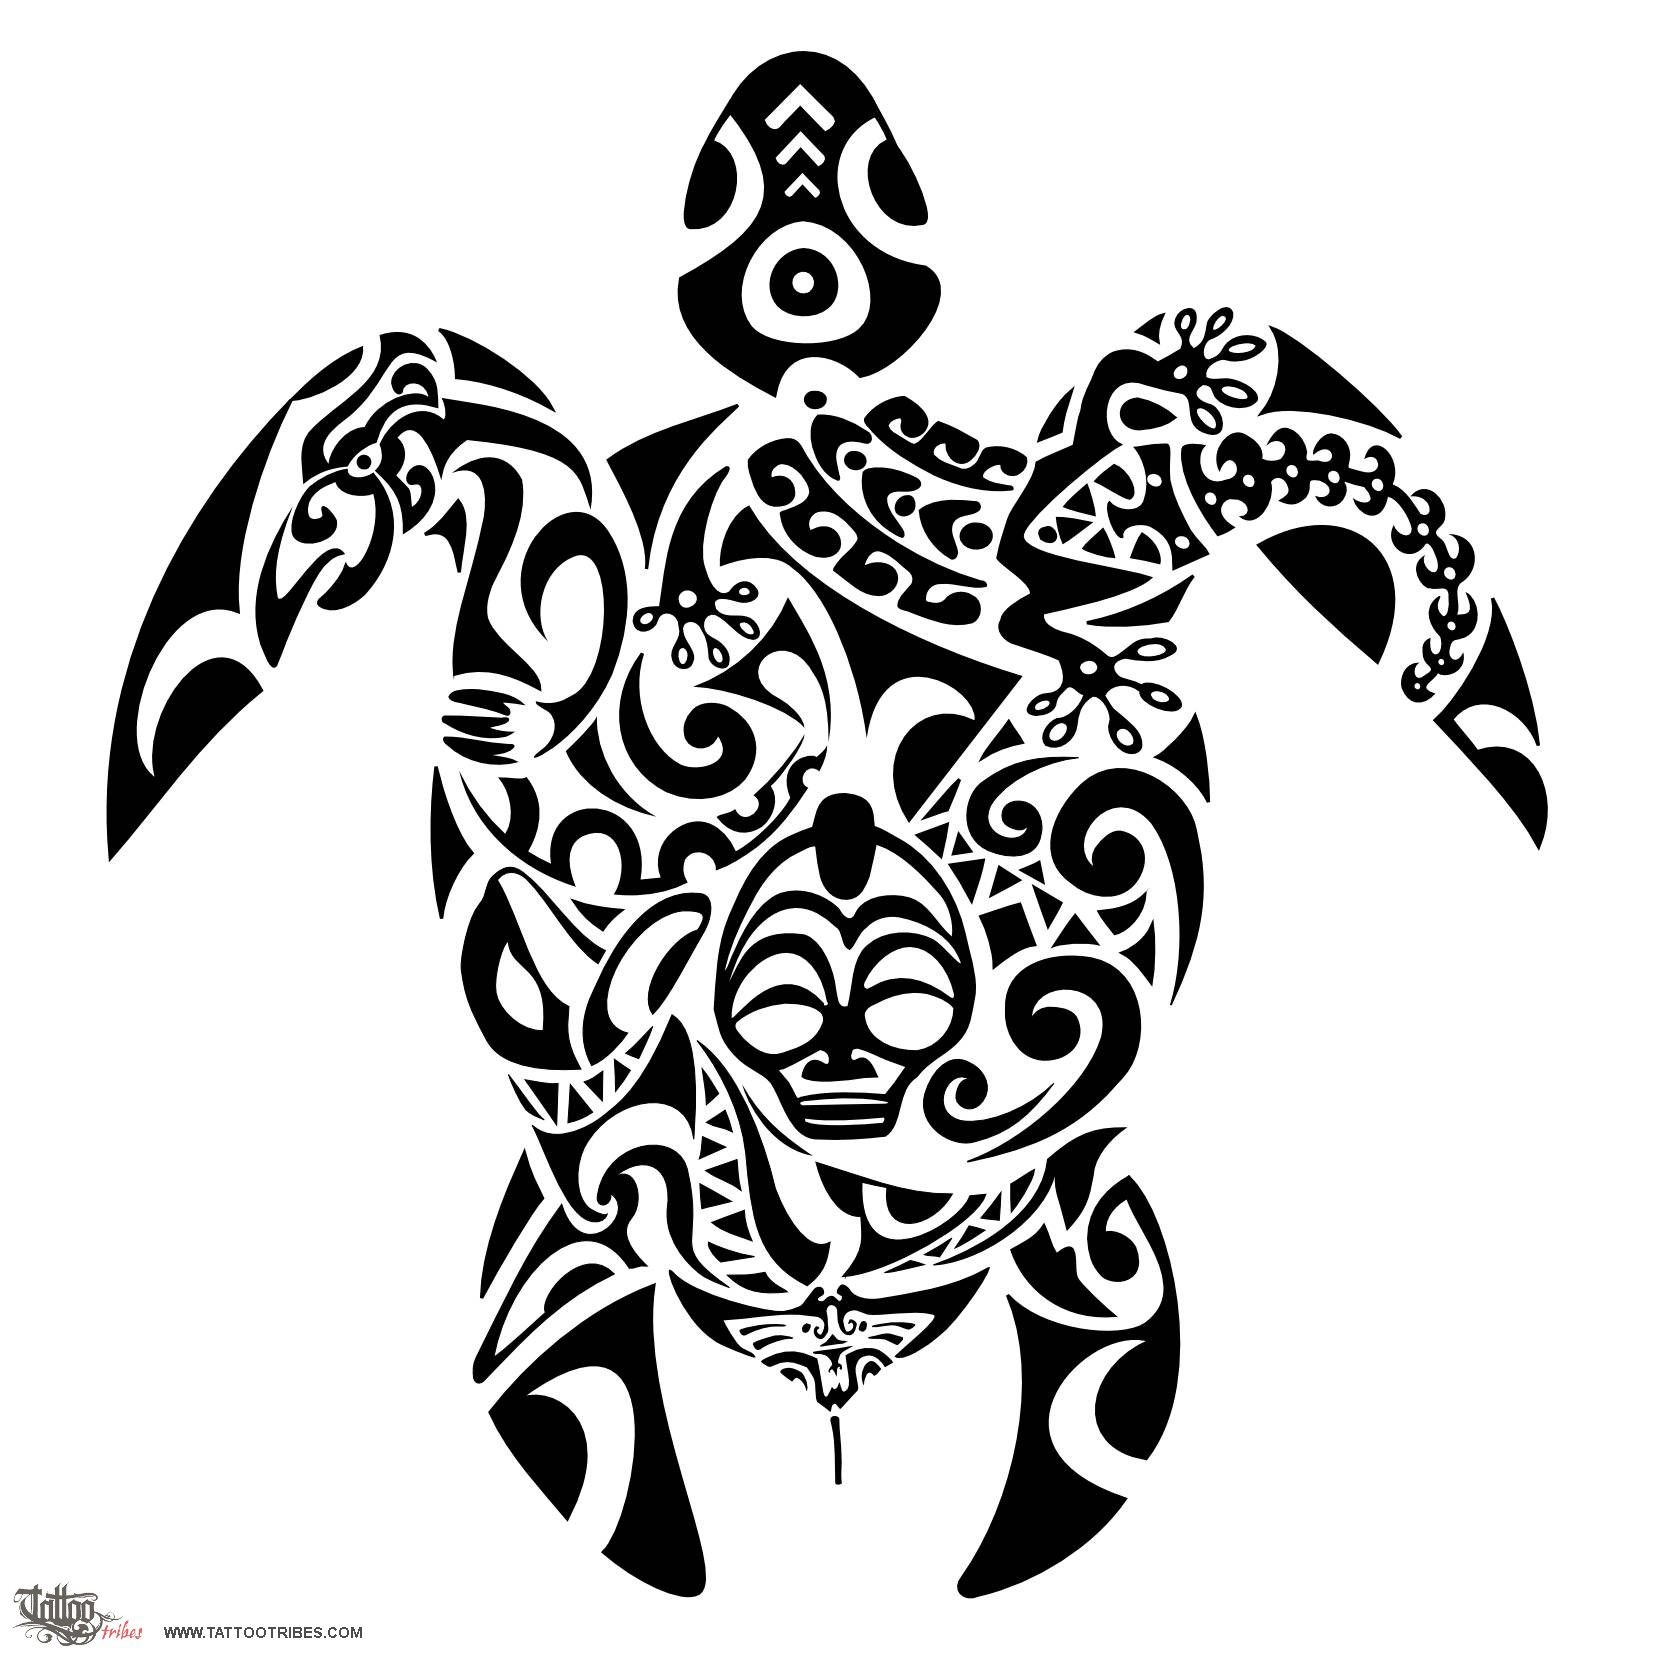 3eb2207c0 TATTOO TRIBES - Shape your dreams, Tattoos and their meaning - wairua,  turtle,